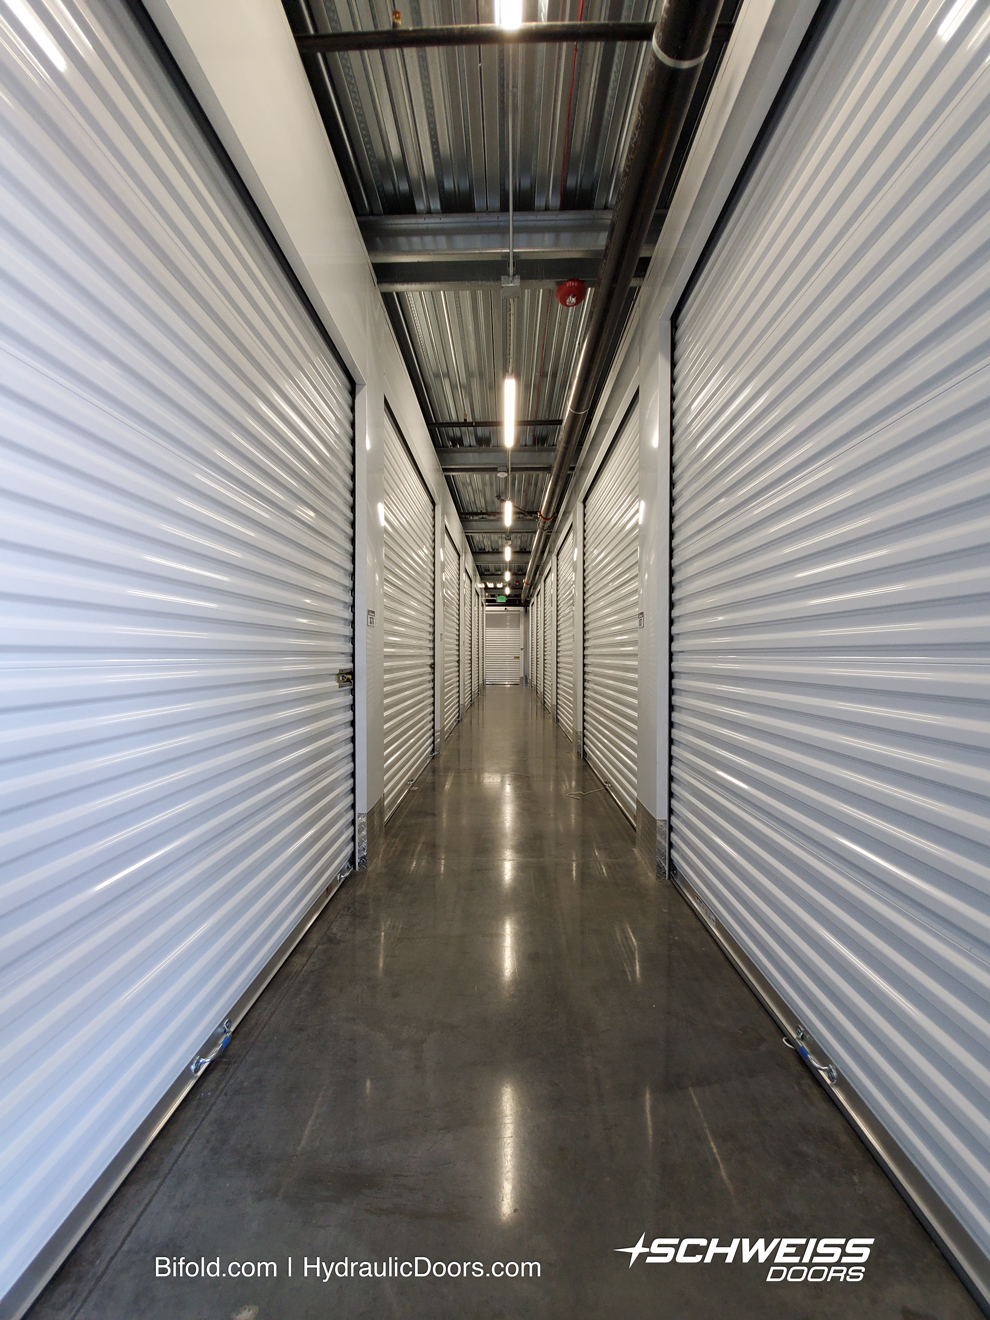 storage space has 592 units and they vary in size